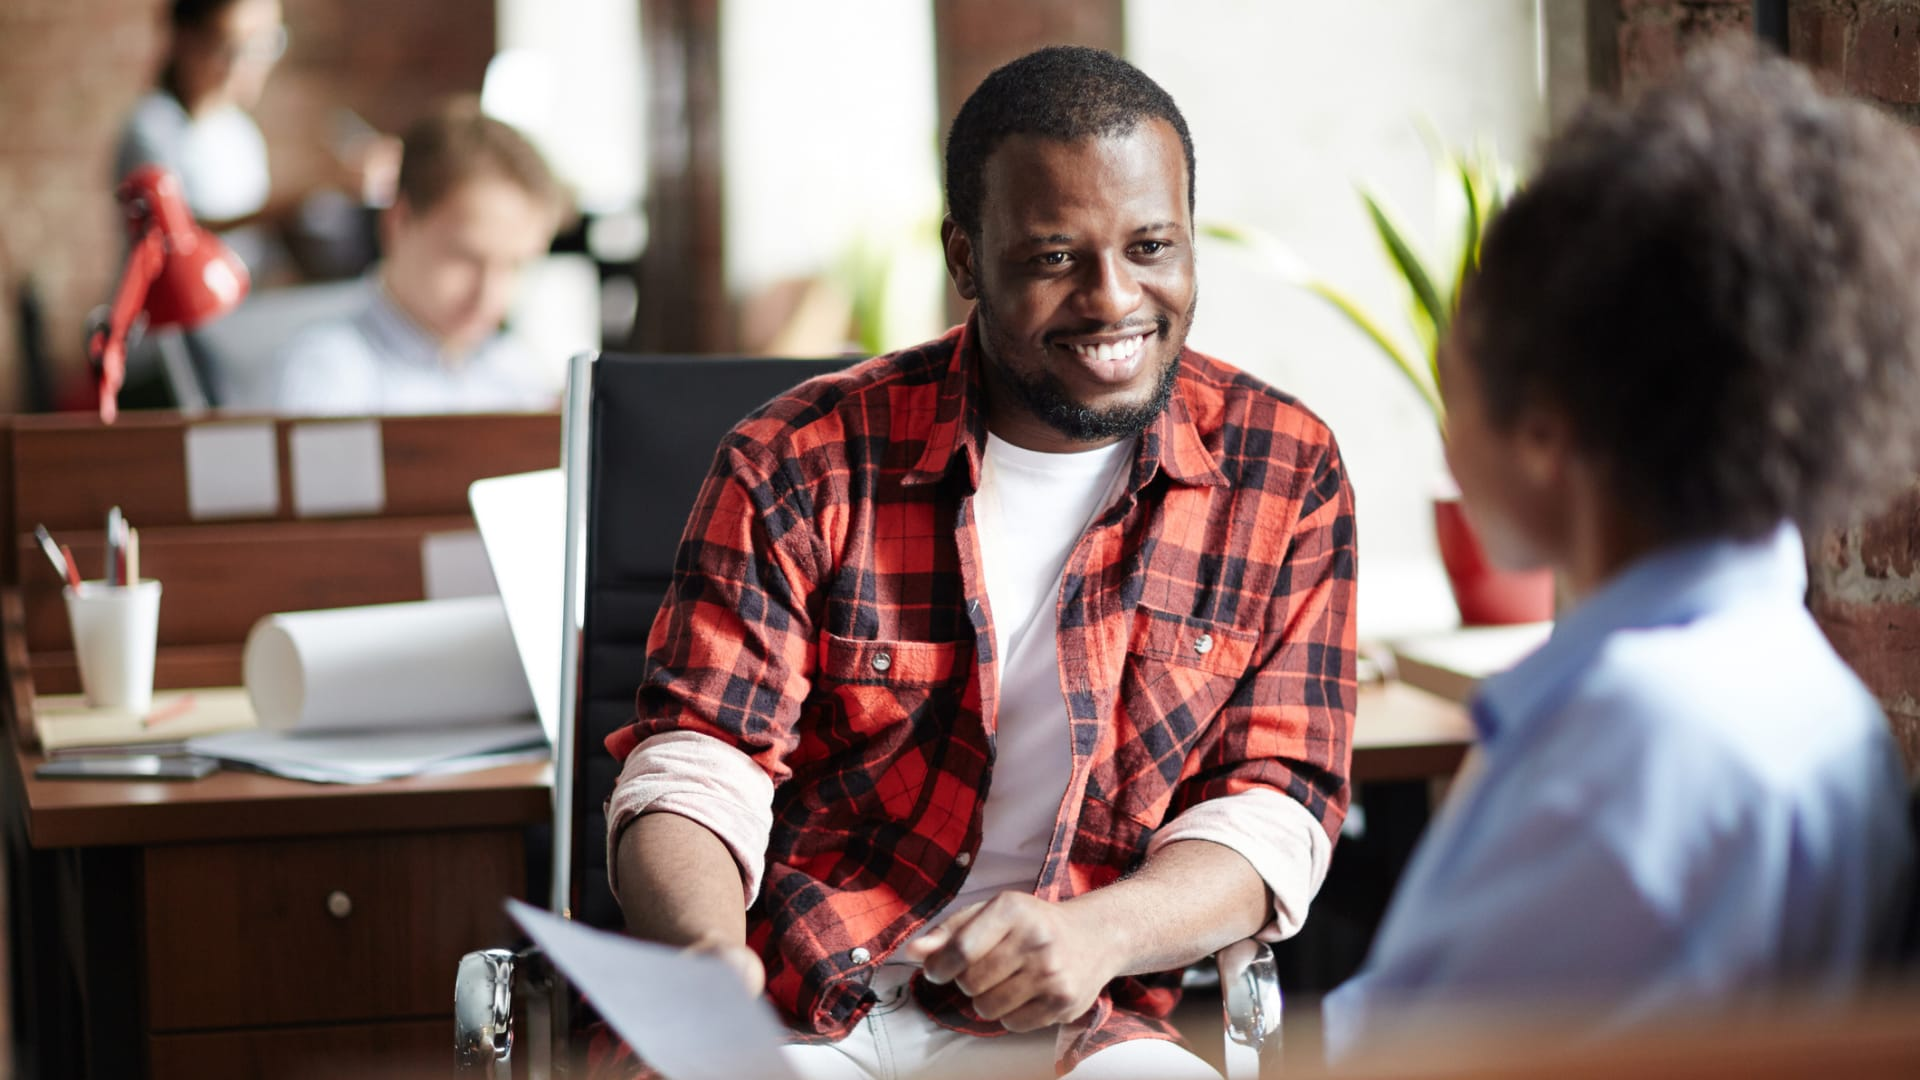 4 Interview Questions to Find Valuable Employees